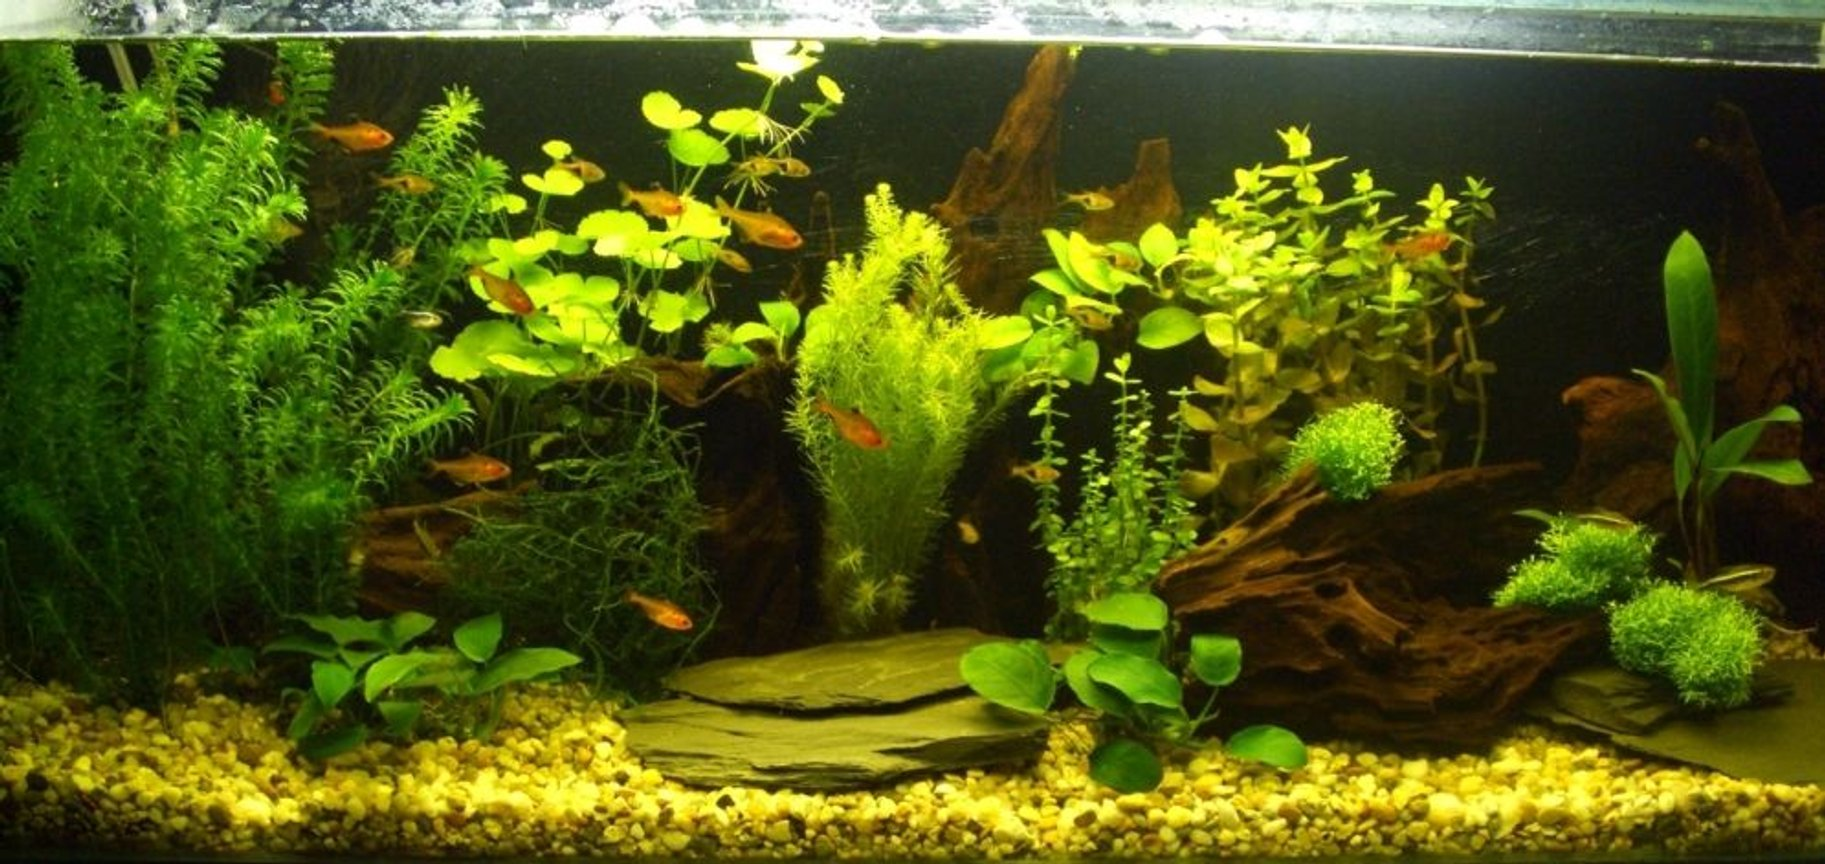 planted tank (mostly live plants and fish) - My new aquarium